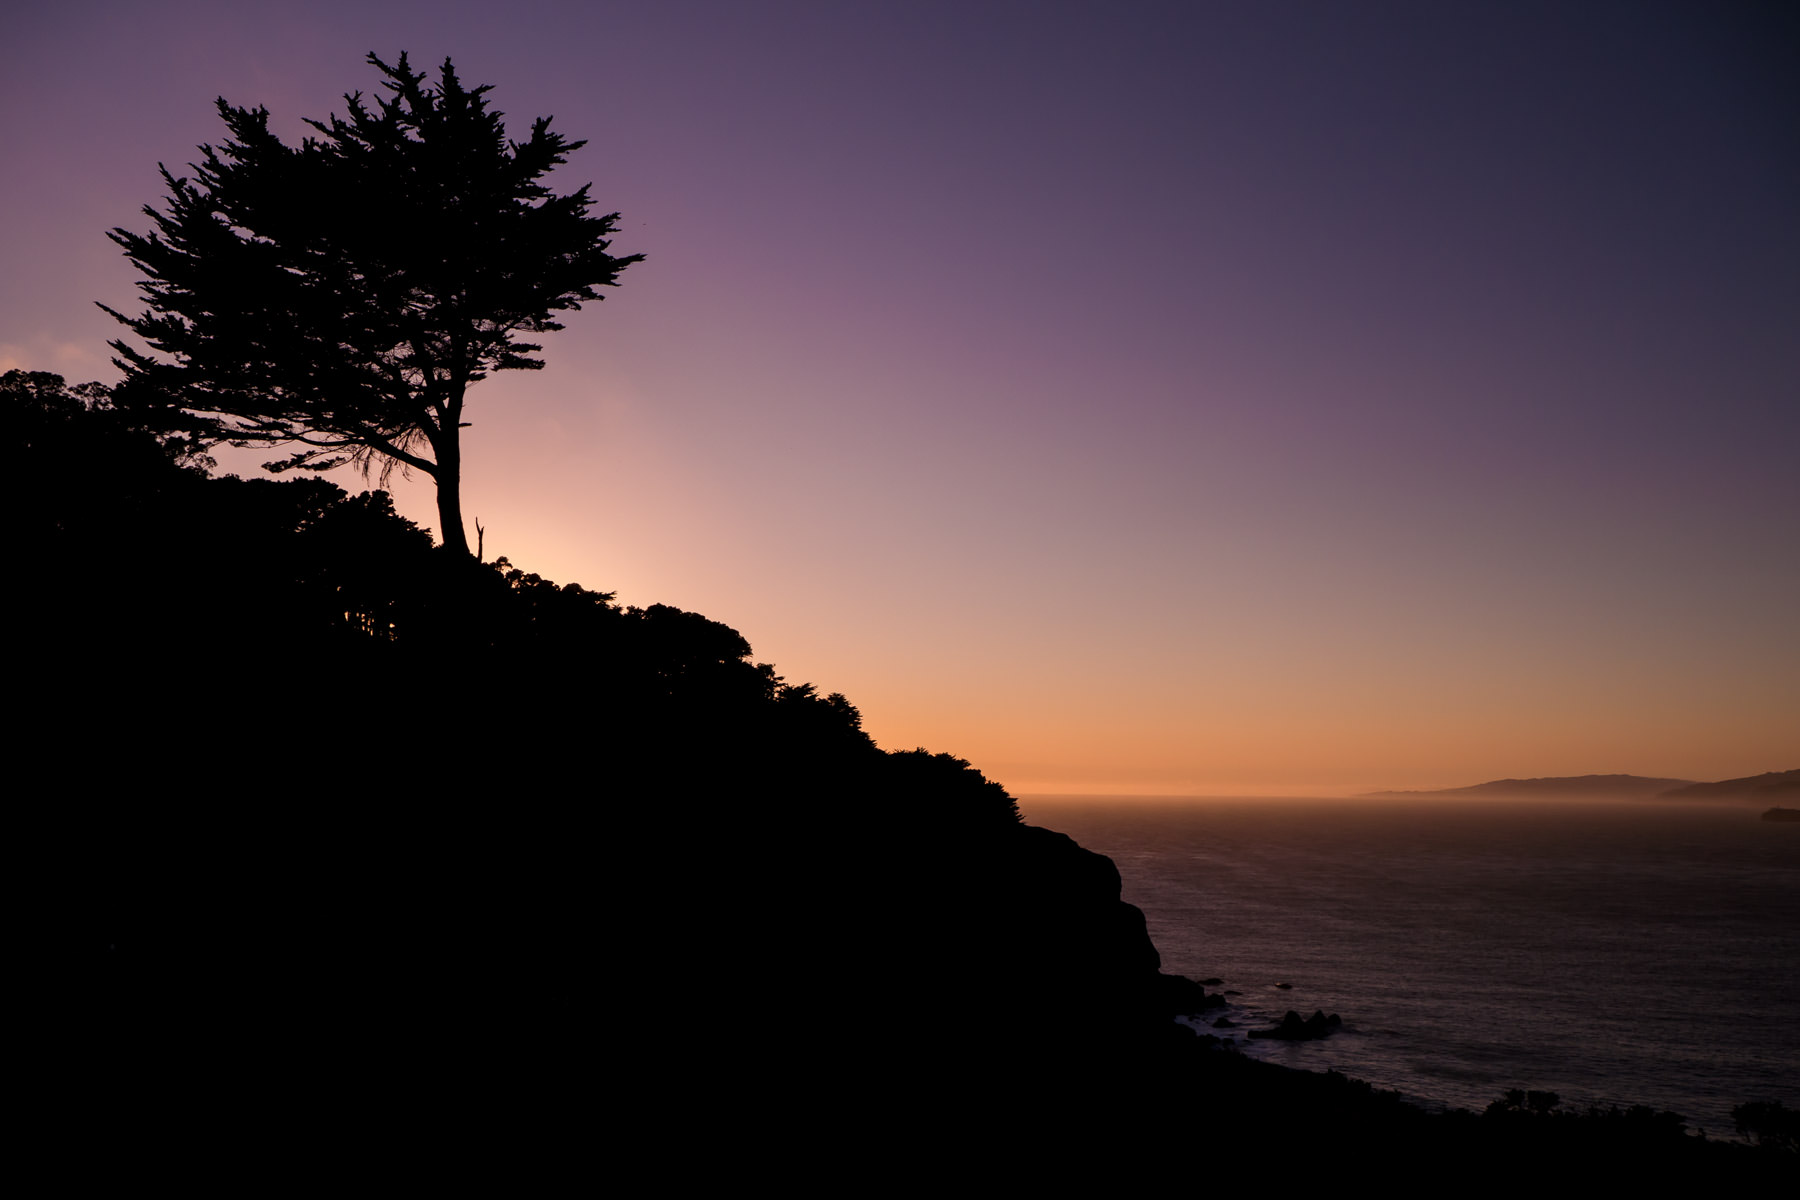 The setting sun silhouettes a tree atop the hilly terrain of San Francisco's Lands End.